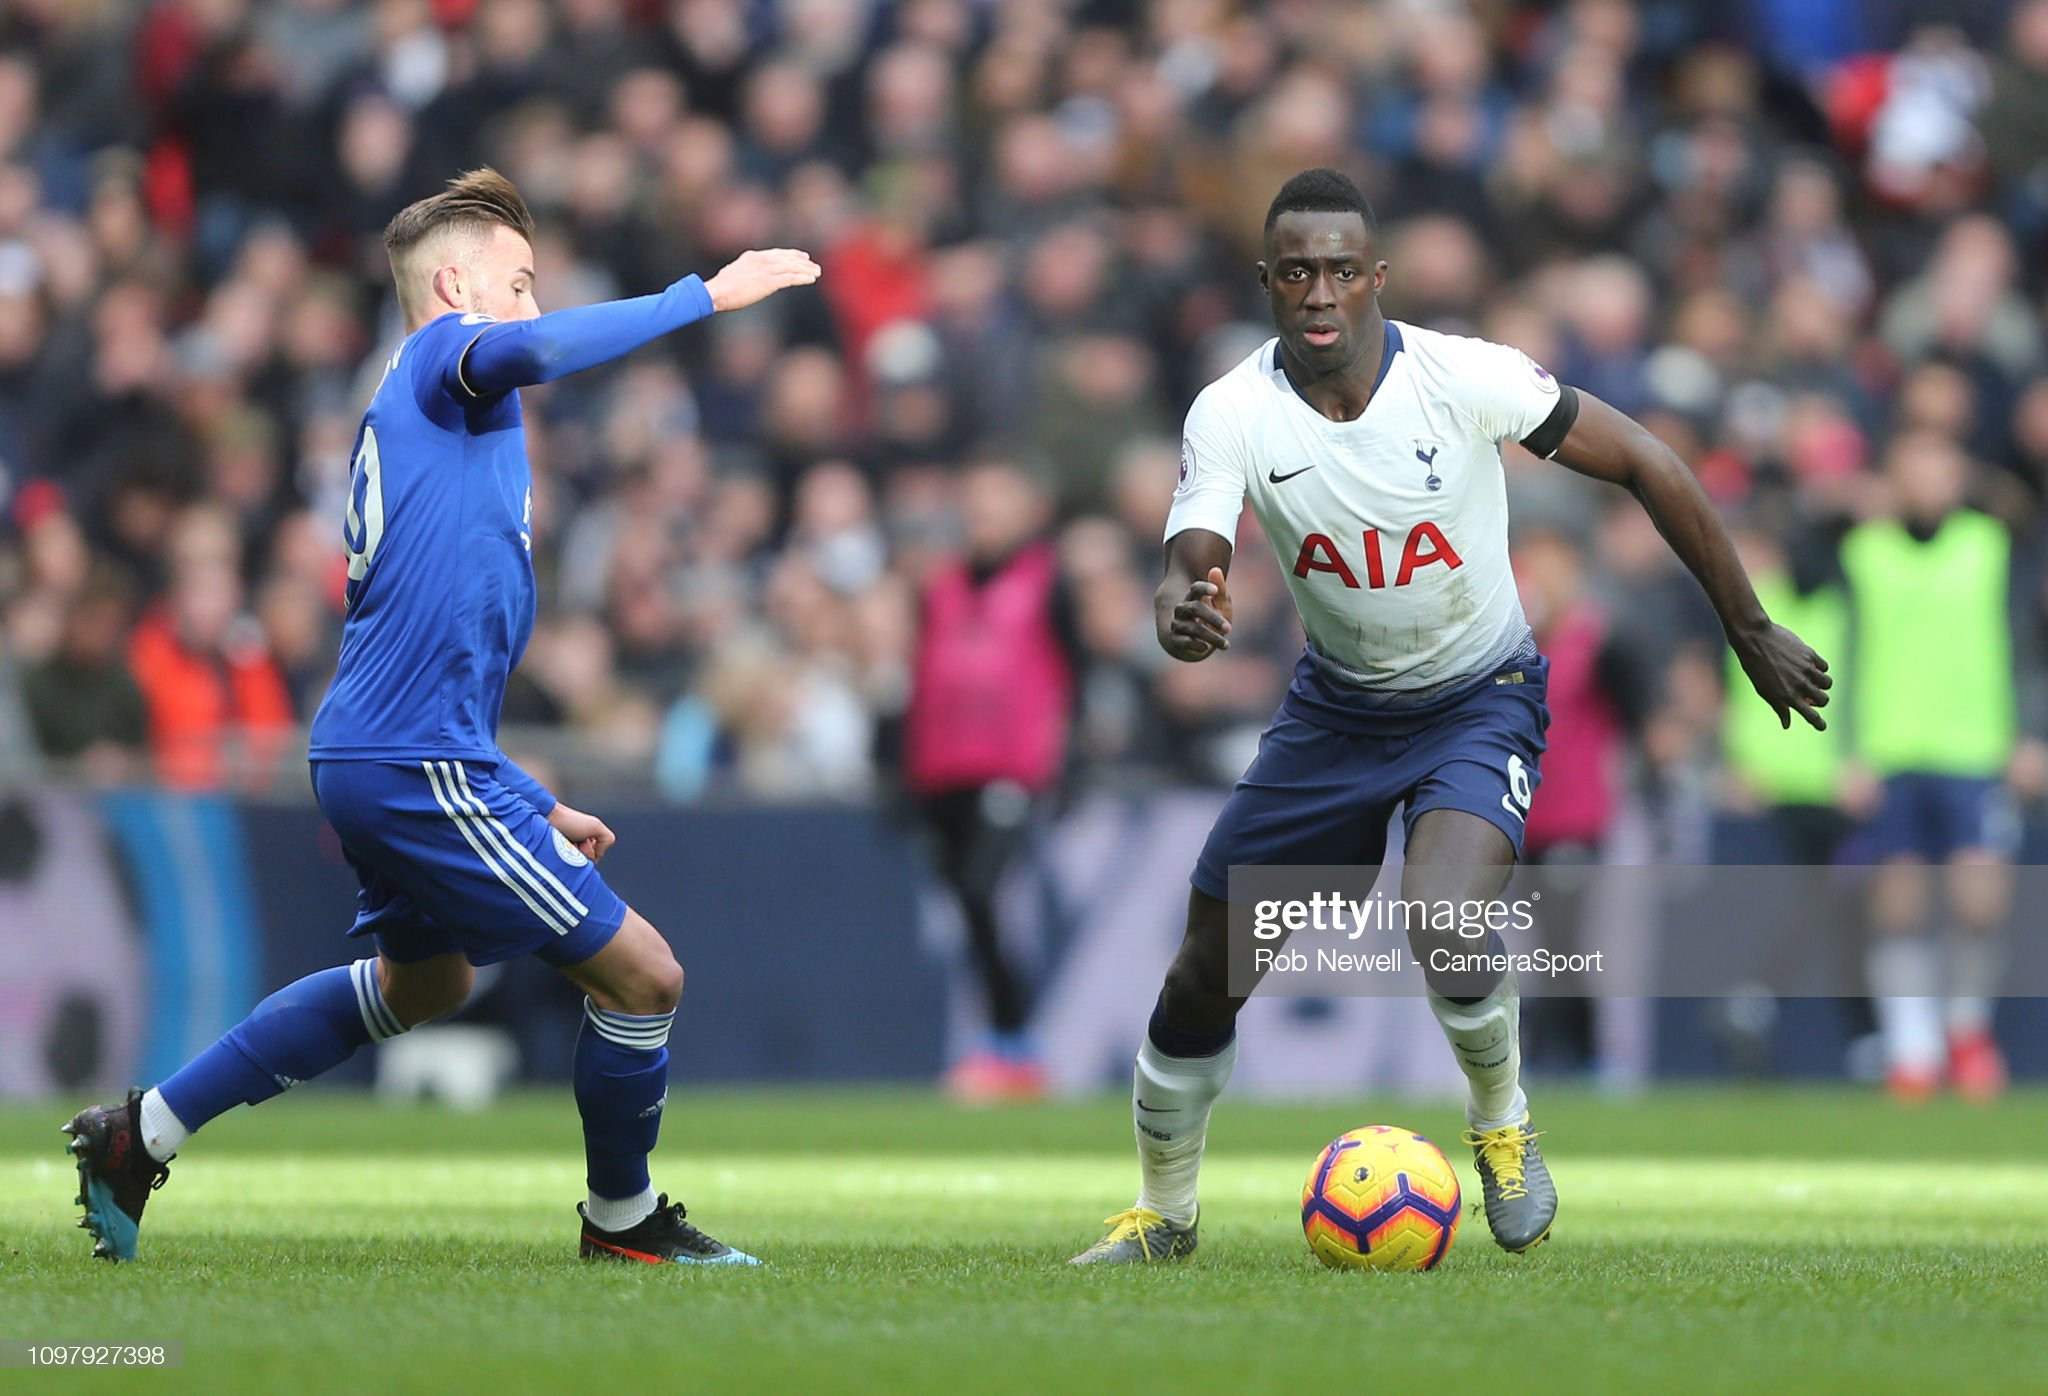 Leicester v Tottenham preview, prediction and odds